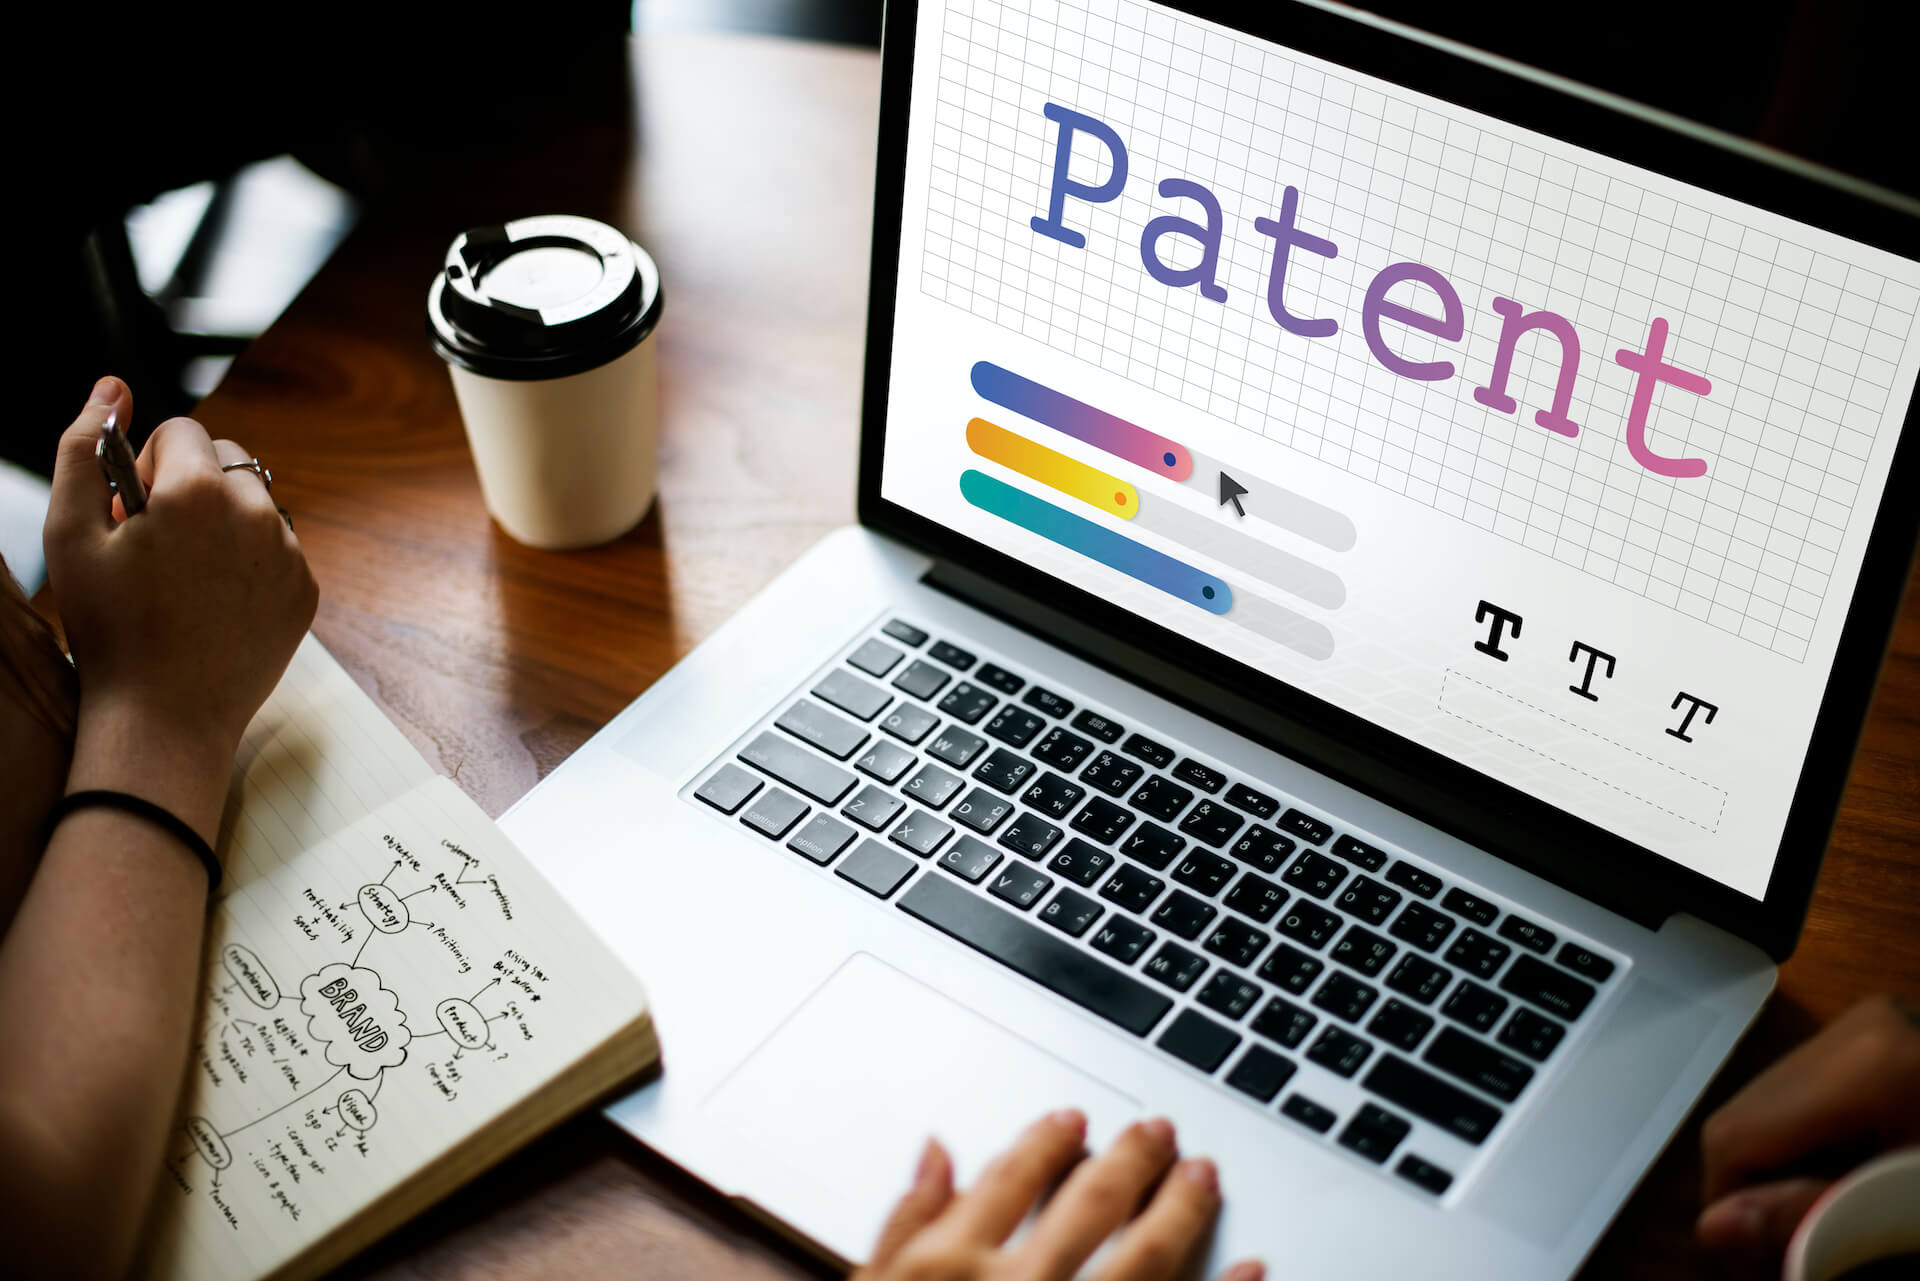 patent-is-product-identity-legal-protection(1)